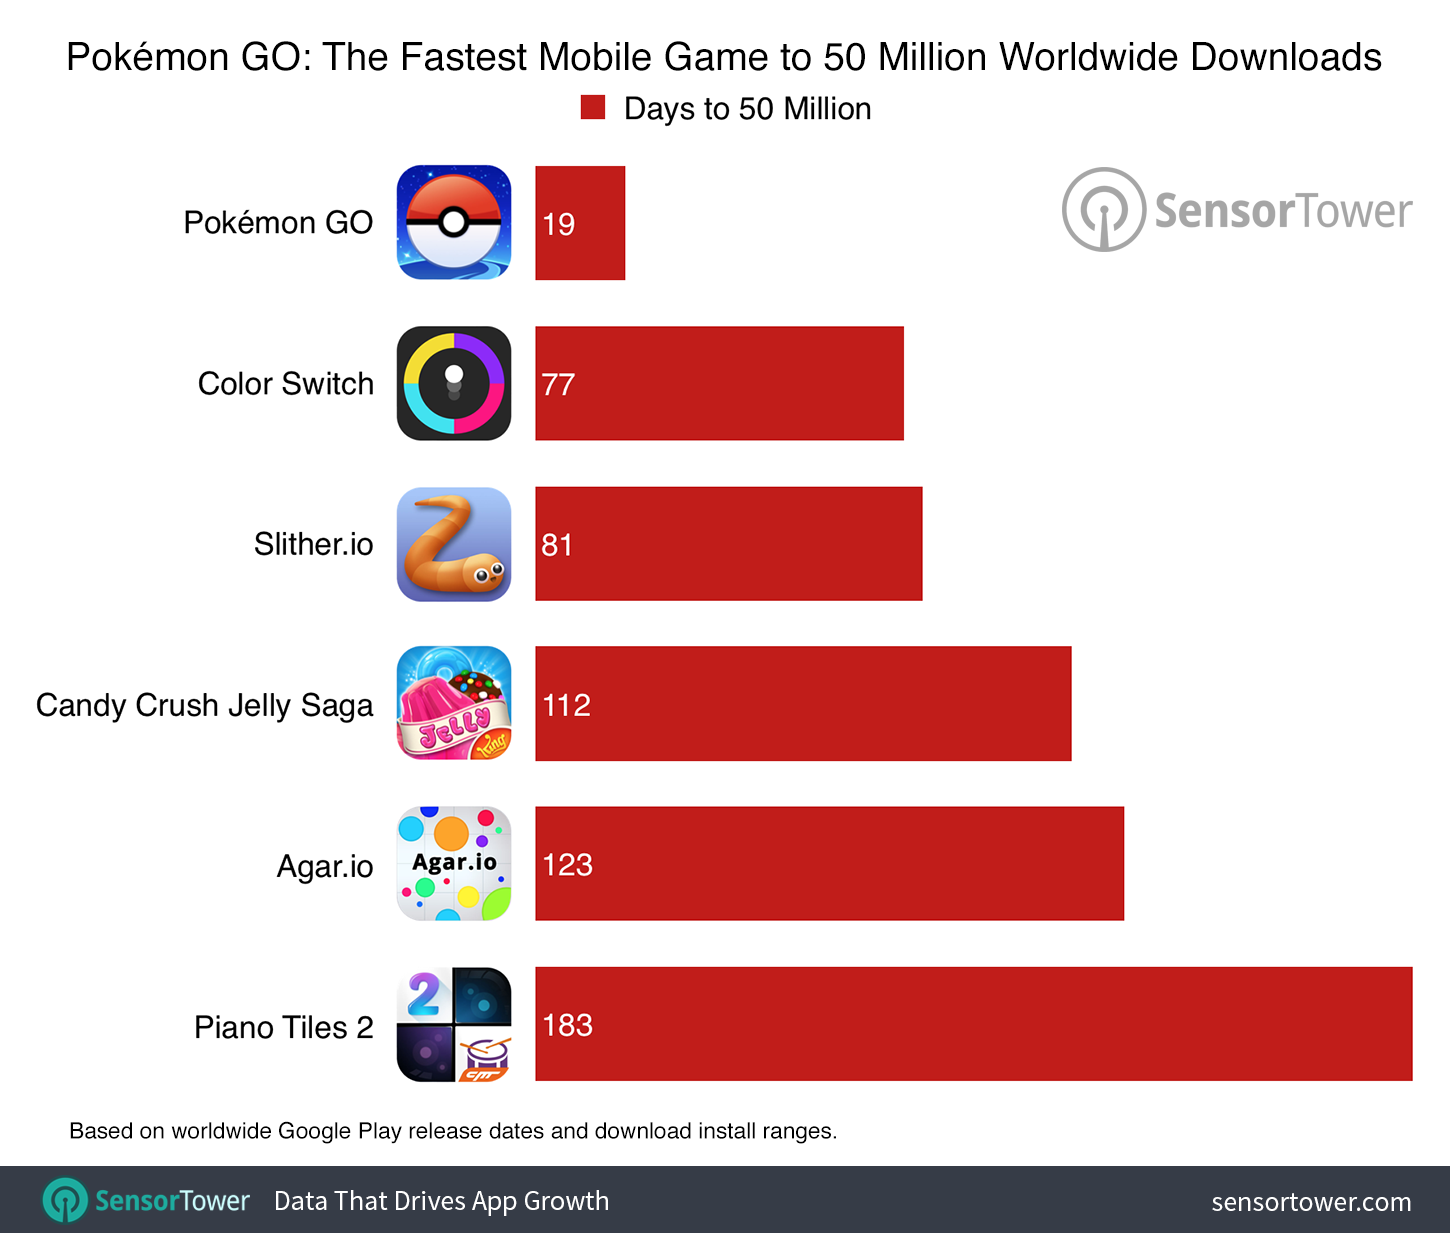 Pokémon GO Hit 50 Million Downloads in Record Time, Now at More Than